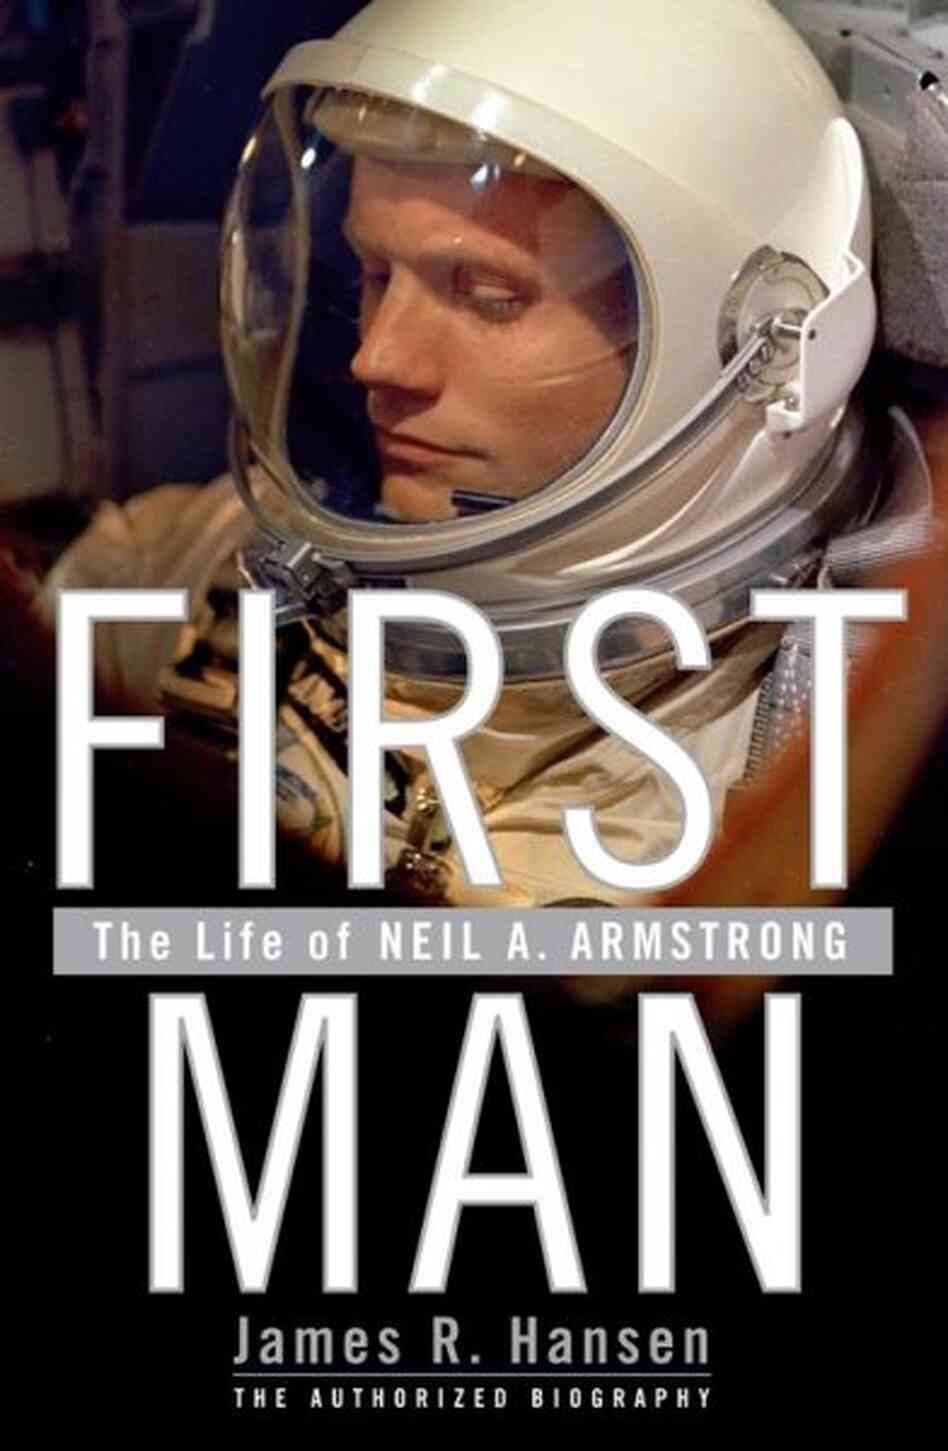 neil armstrong book covers - photo #17